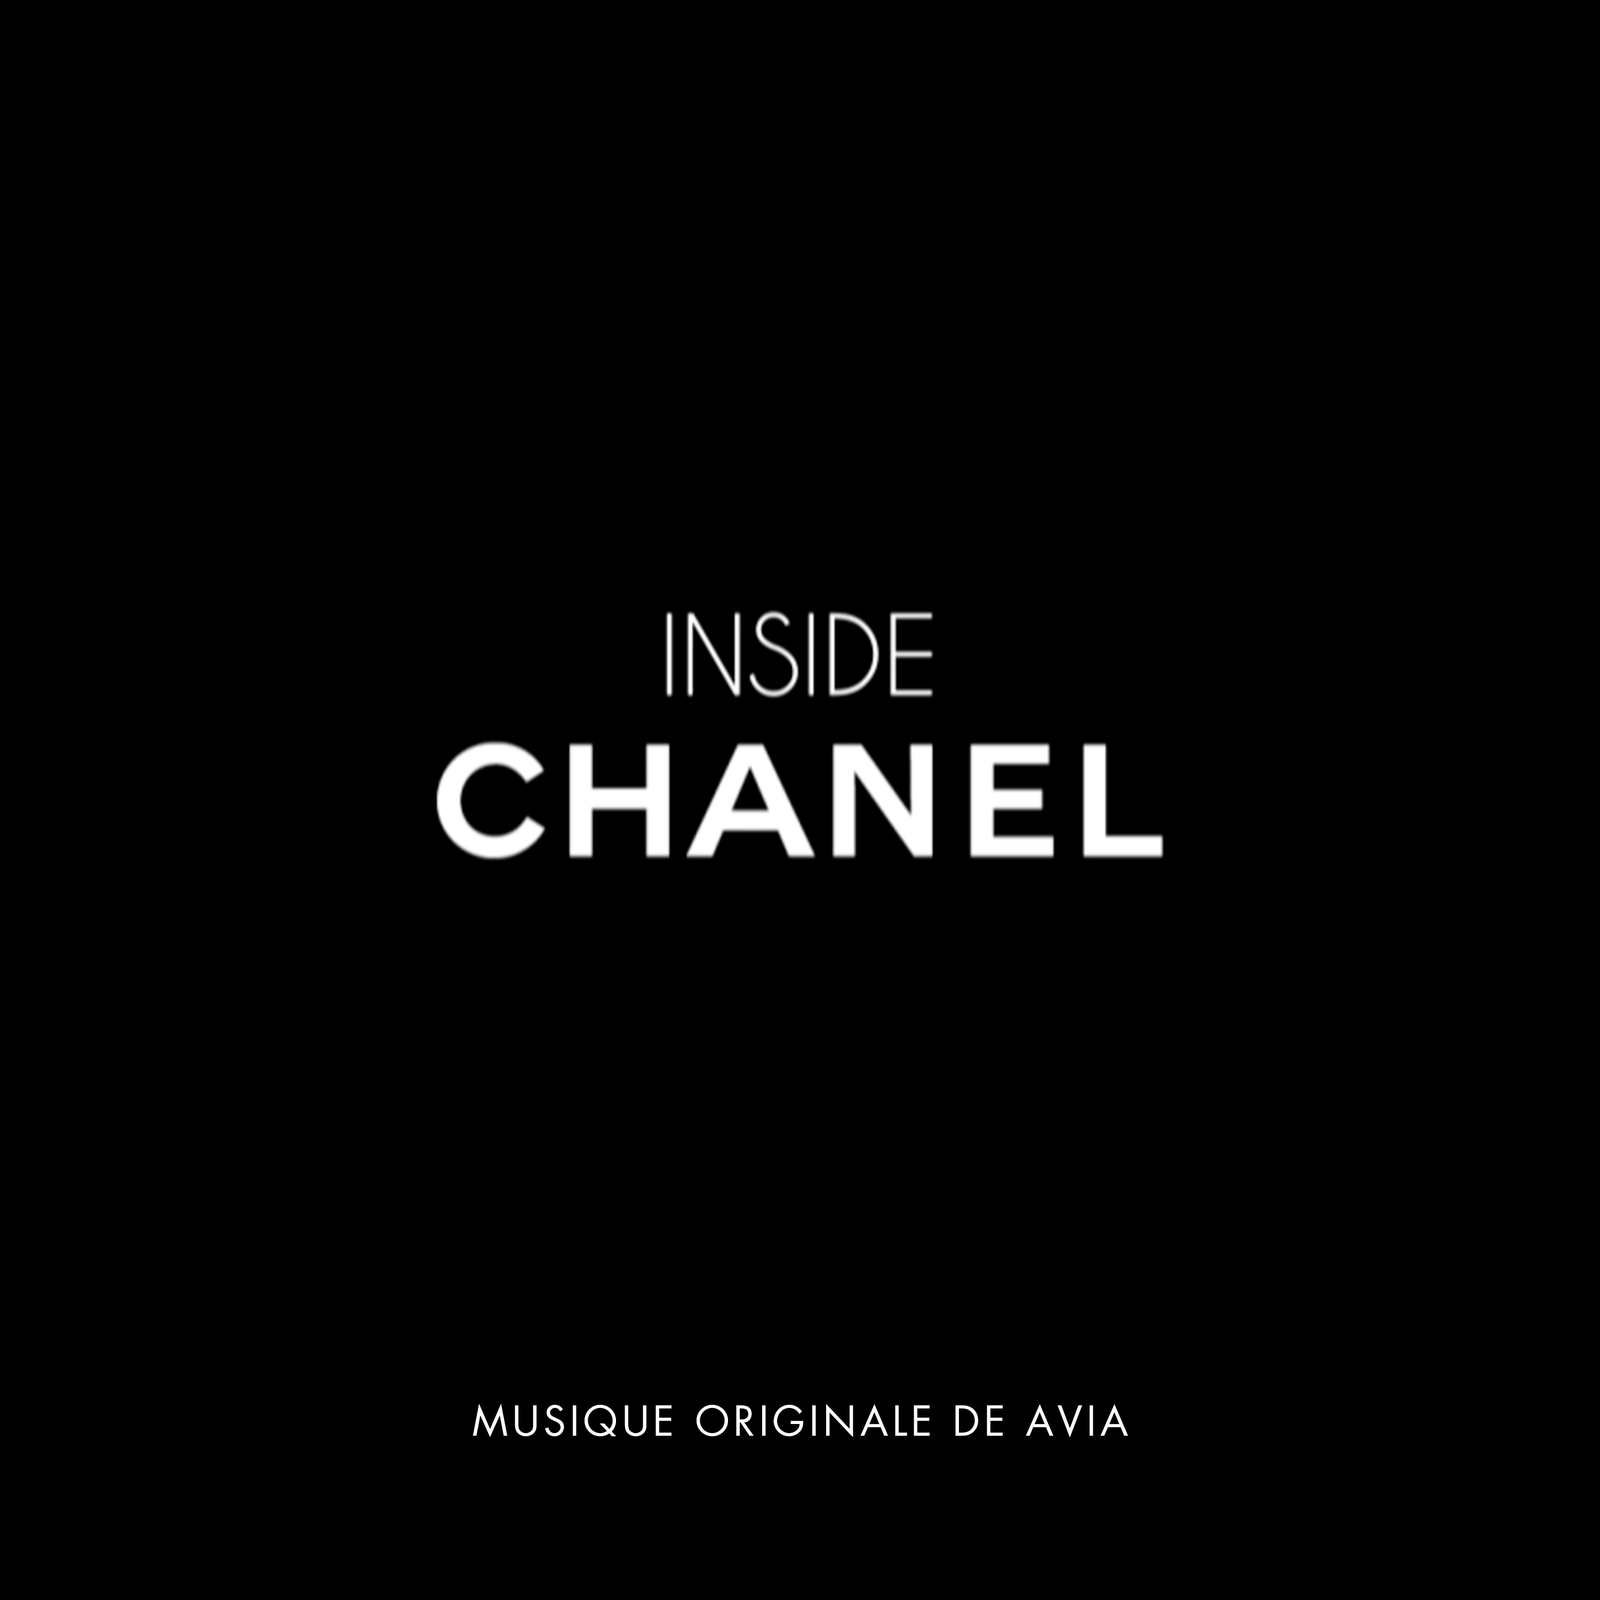 Inside Chanel d'Avia